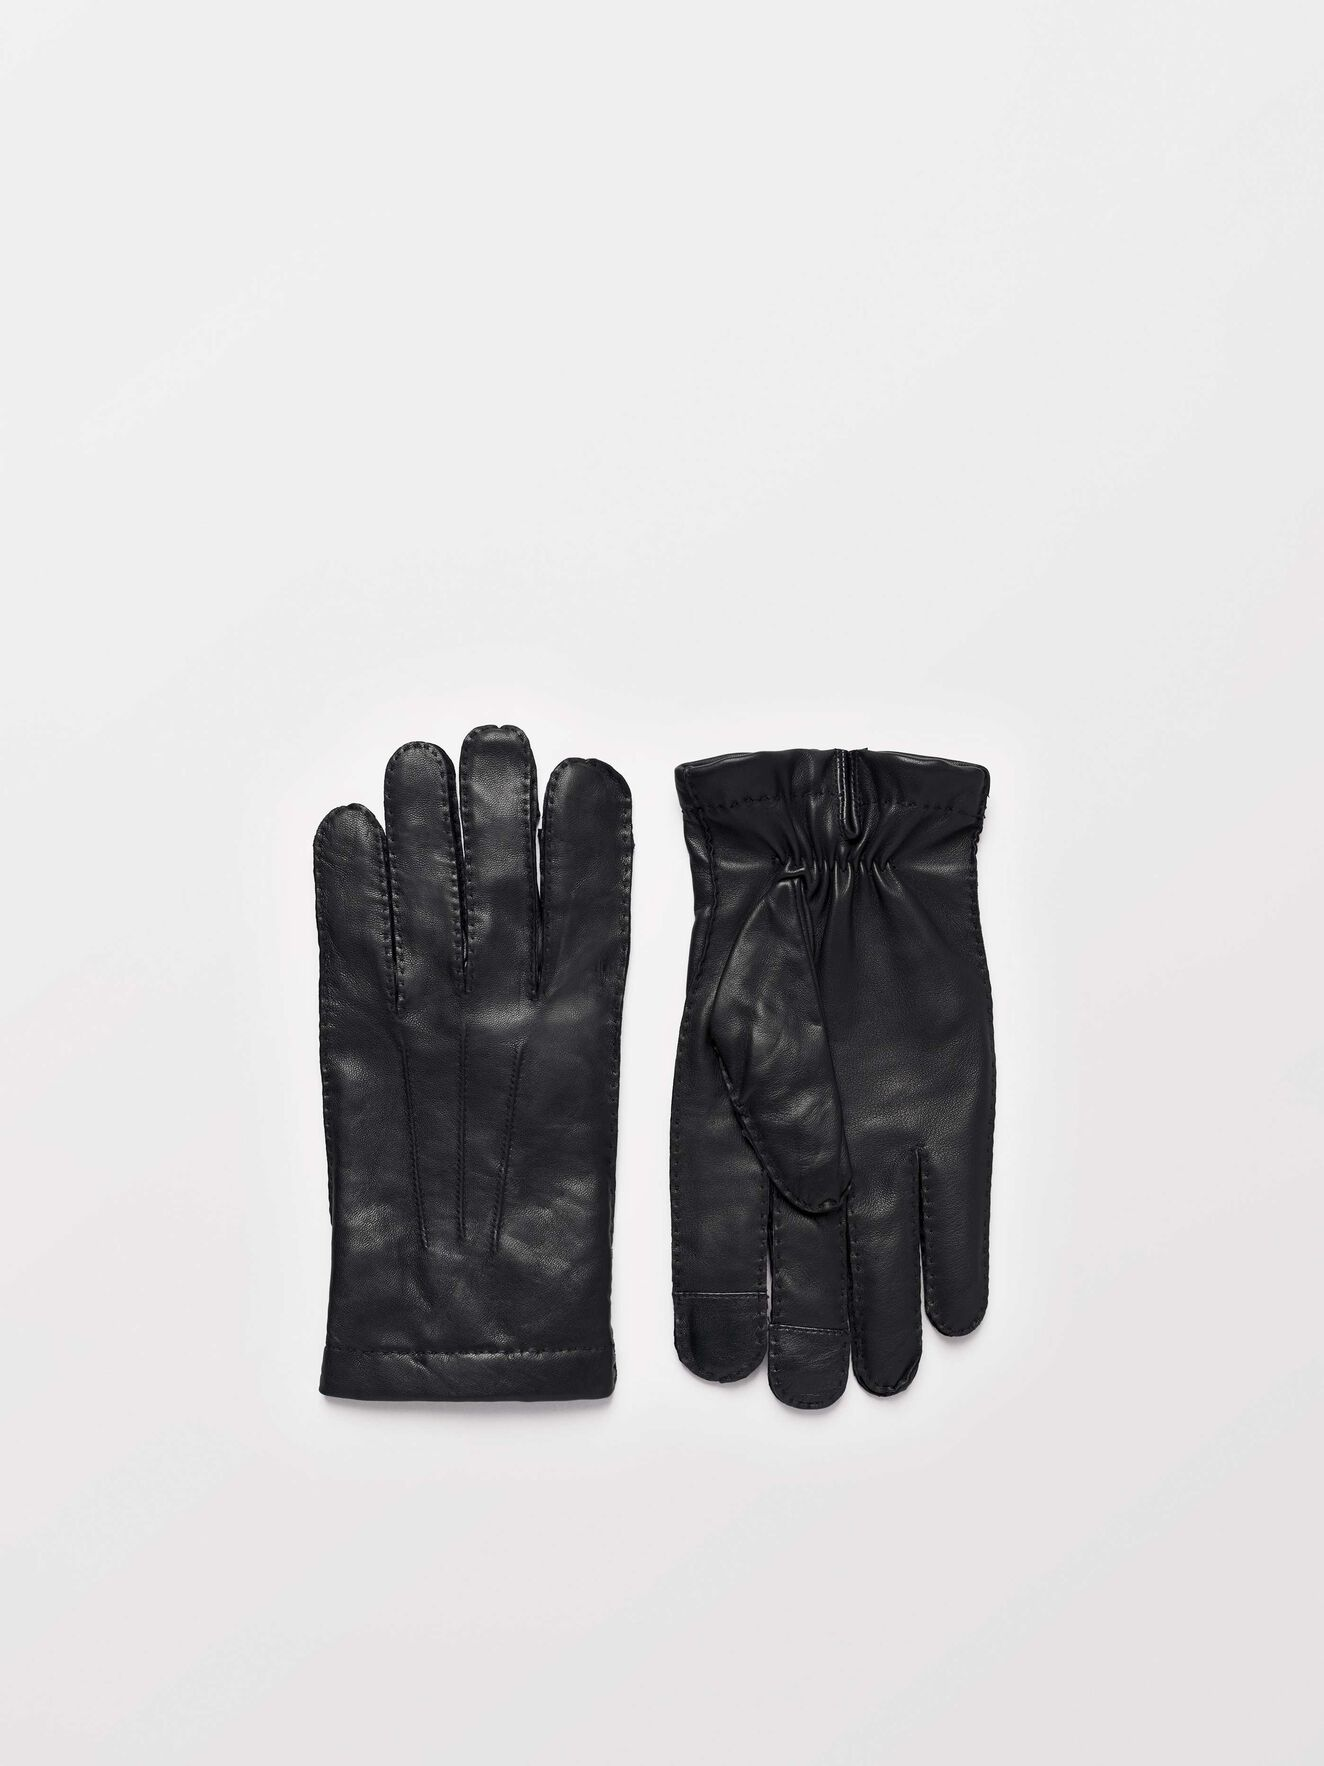 Glissade Gloves in Black from Tiger of Sweden